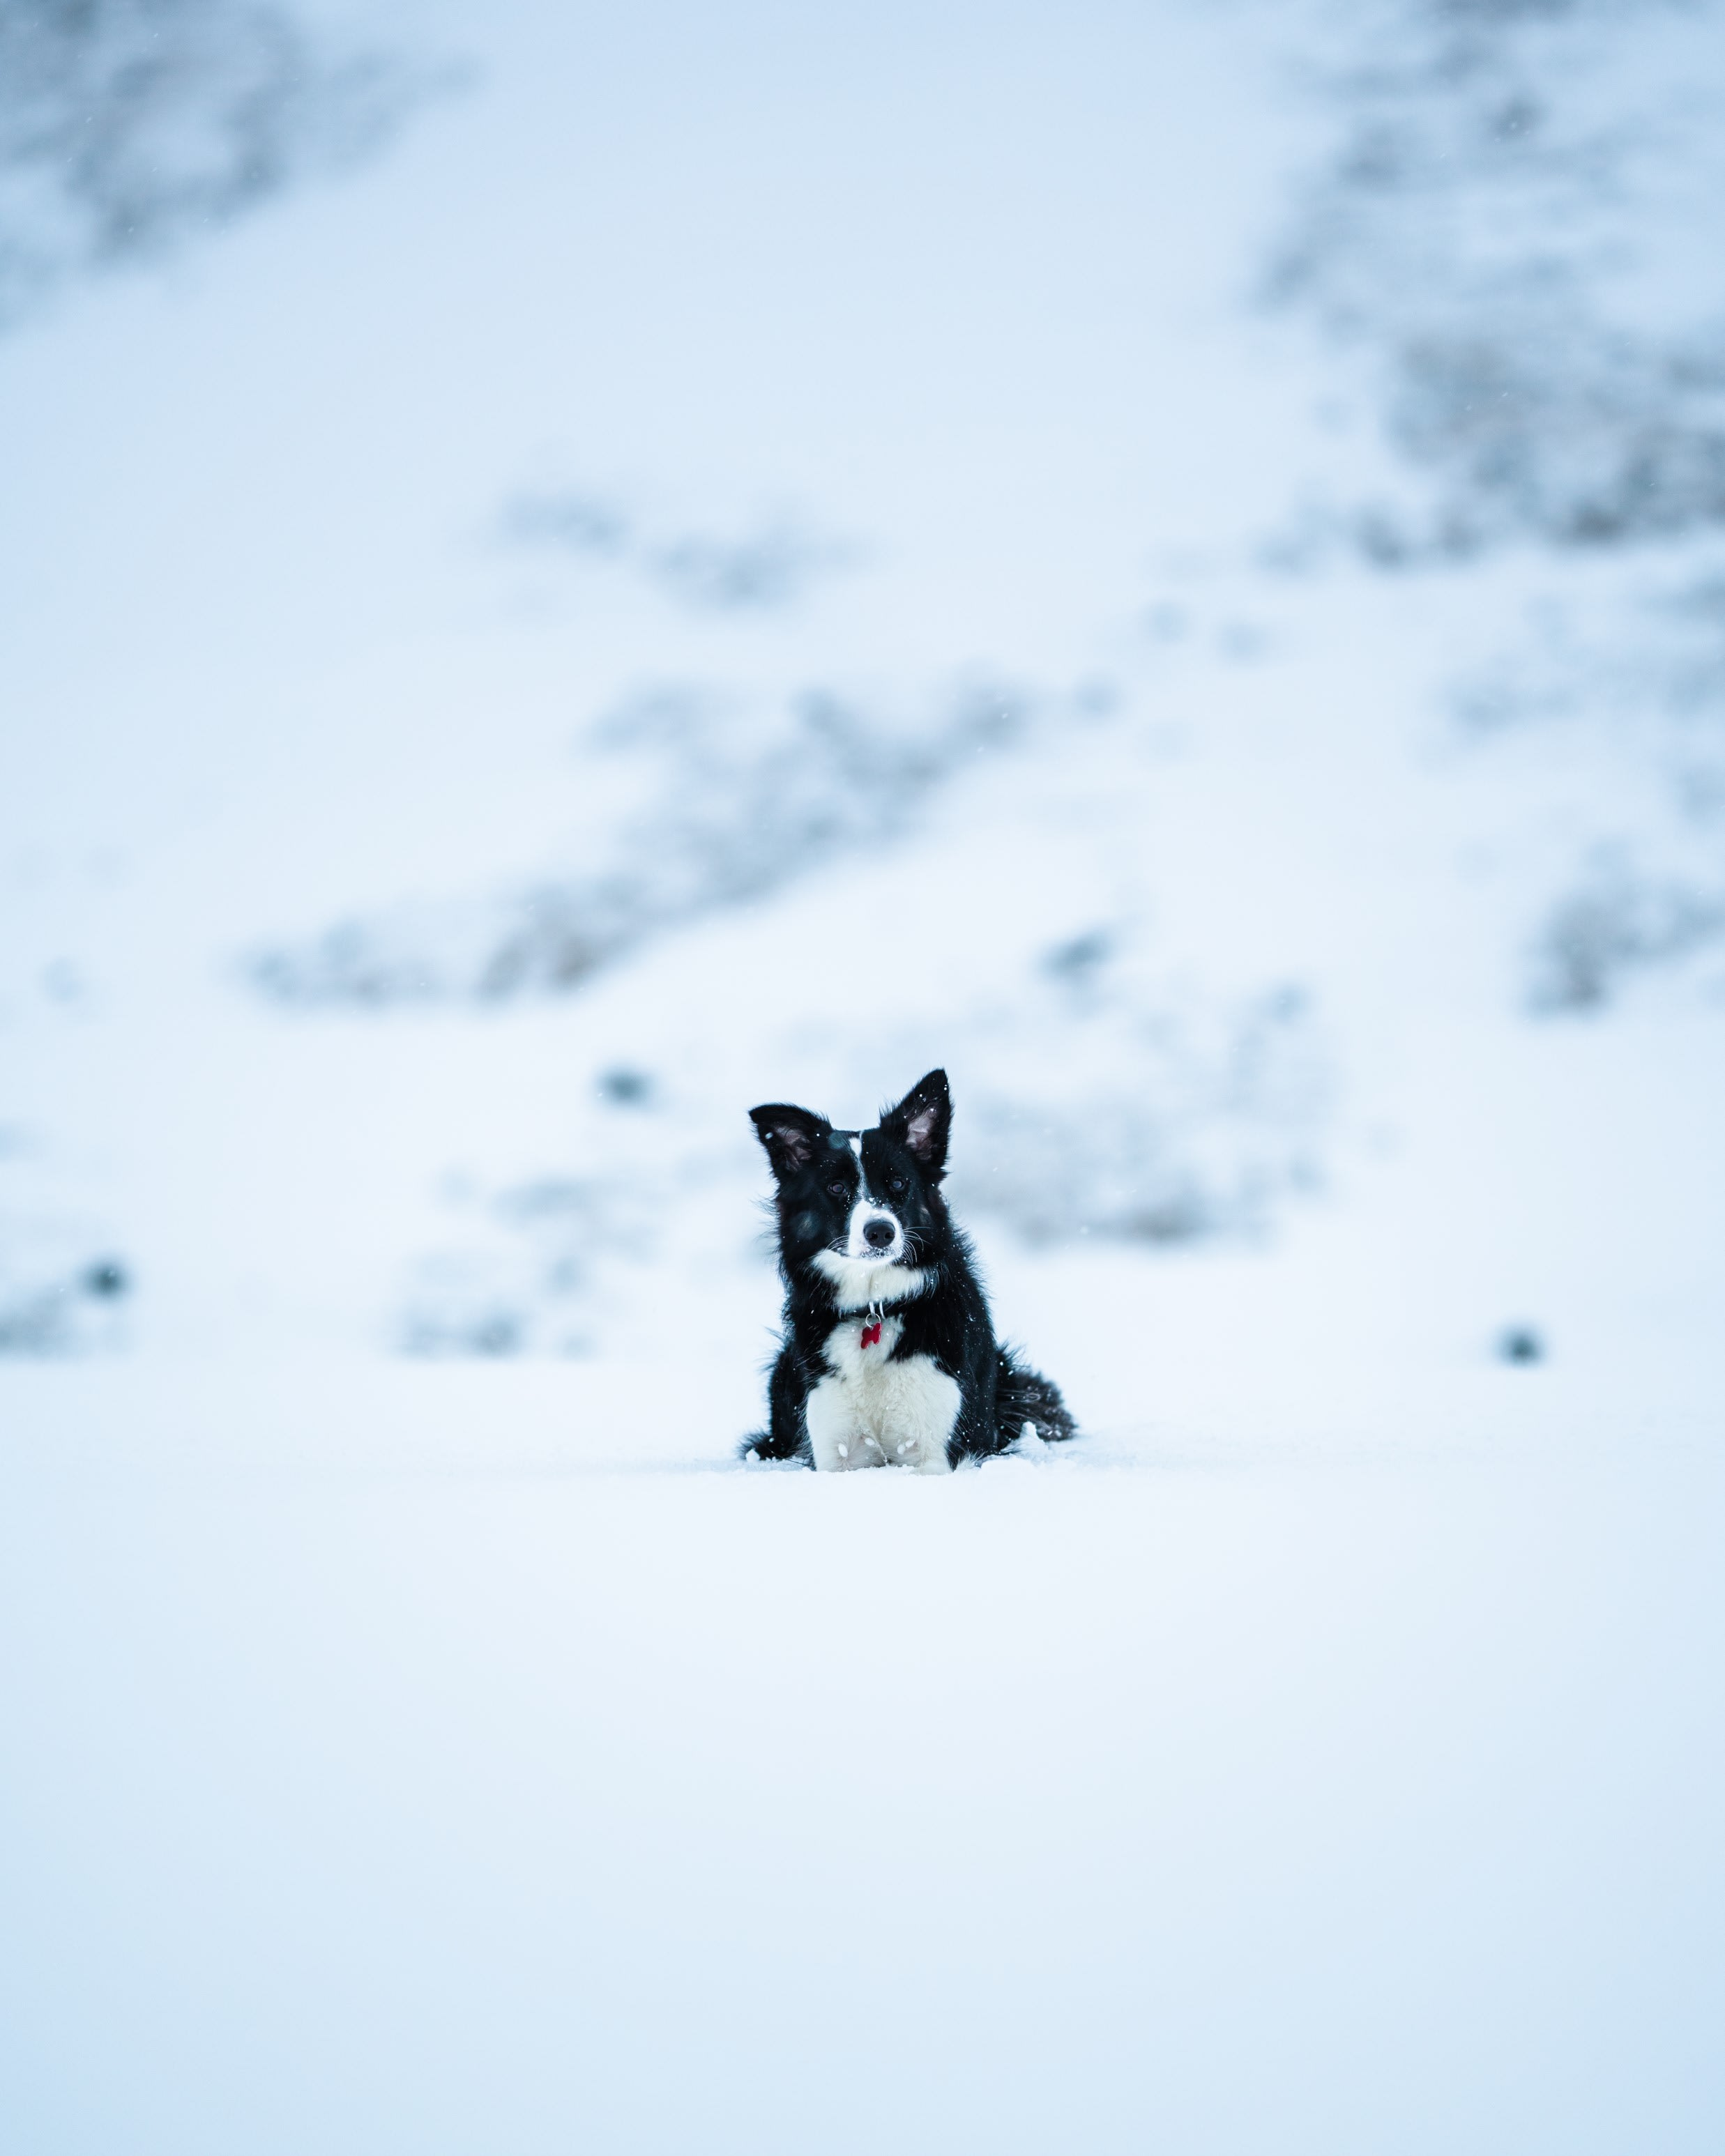 a small black and white border collie dog sitting in the snow in a mountaineous region of Iceland